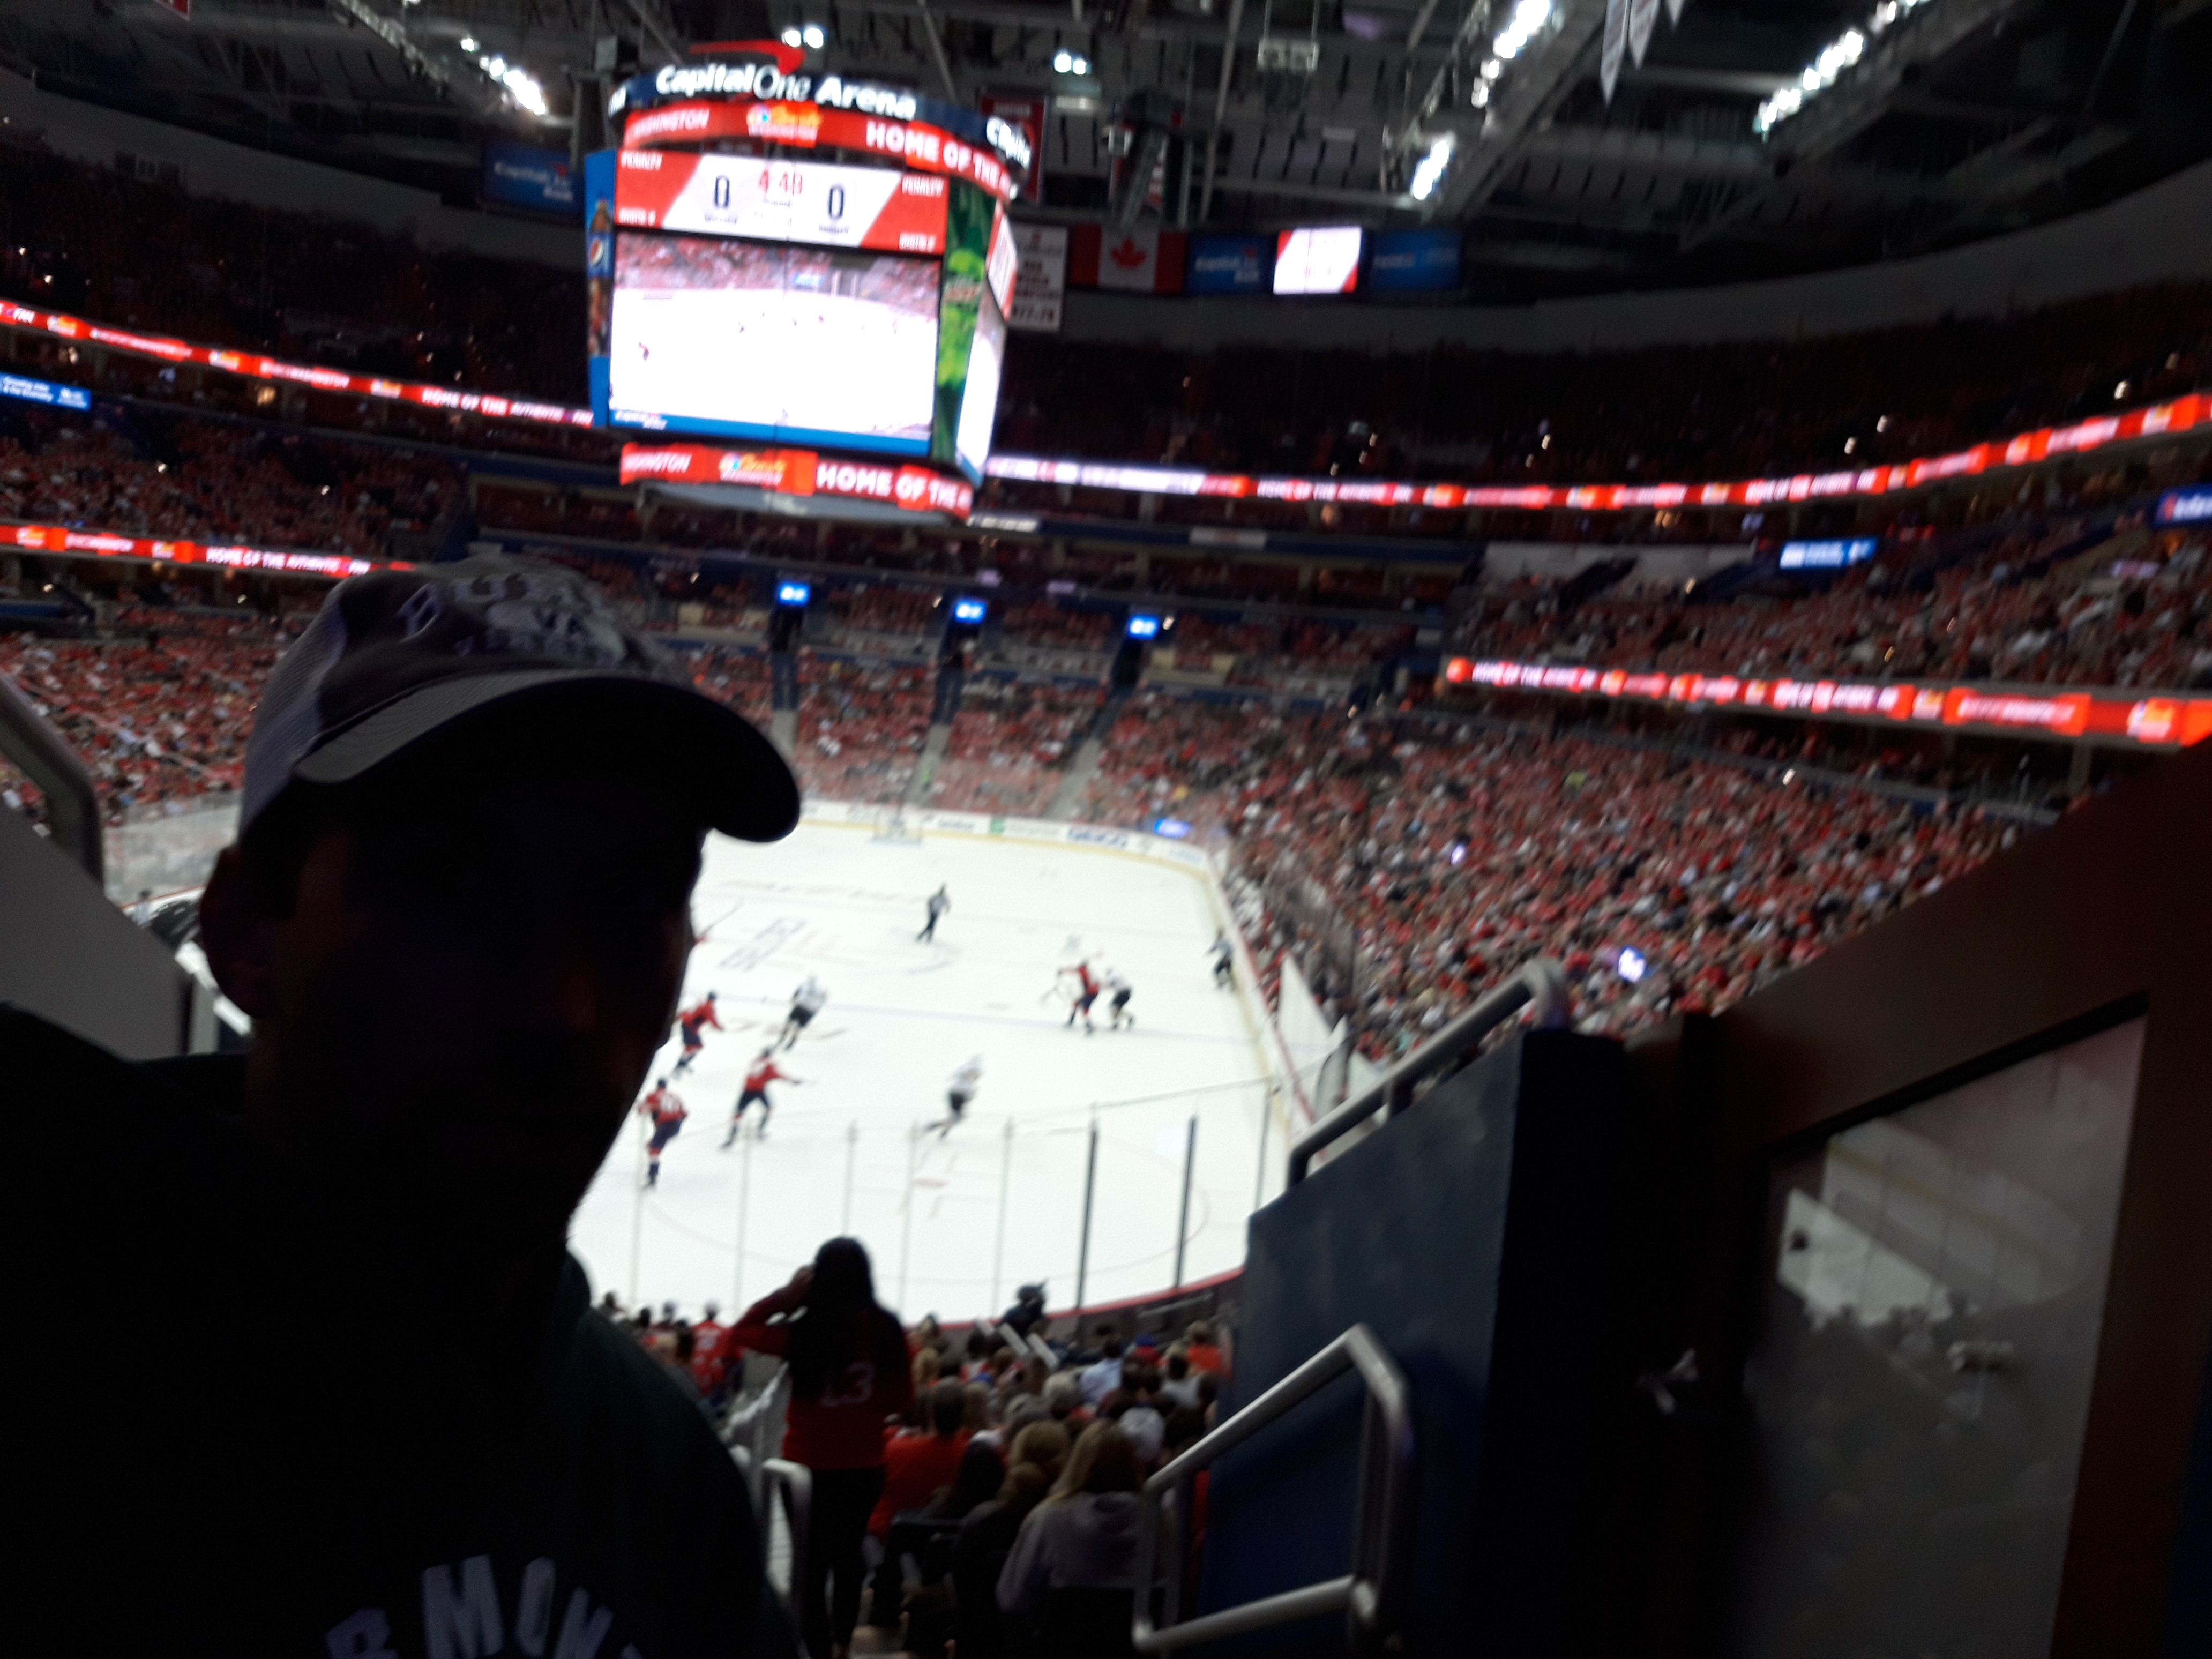 Got to the game